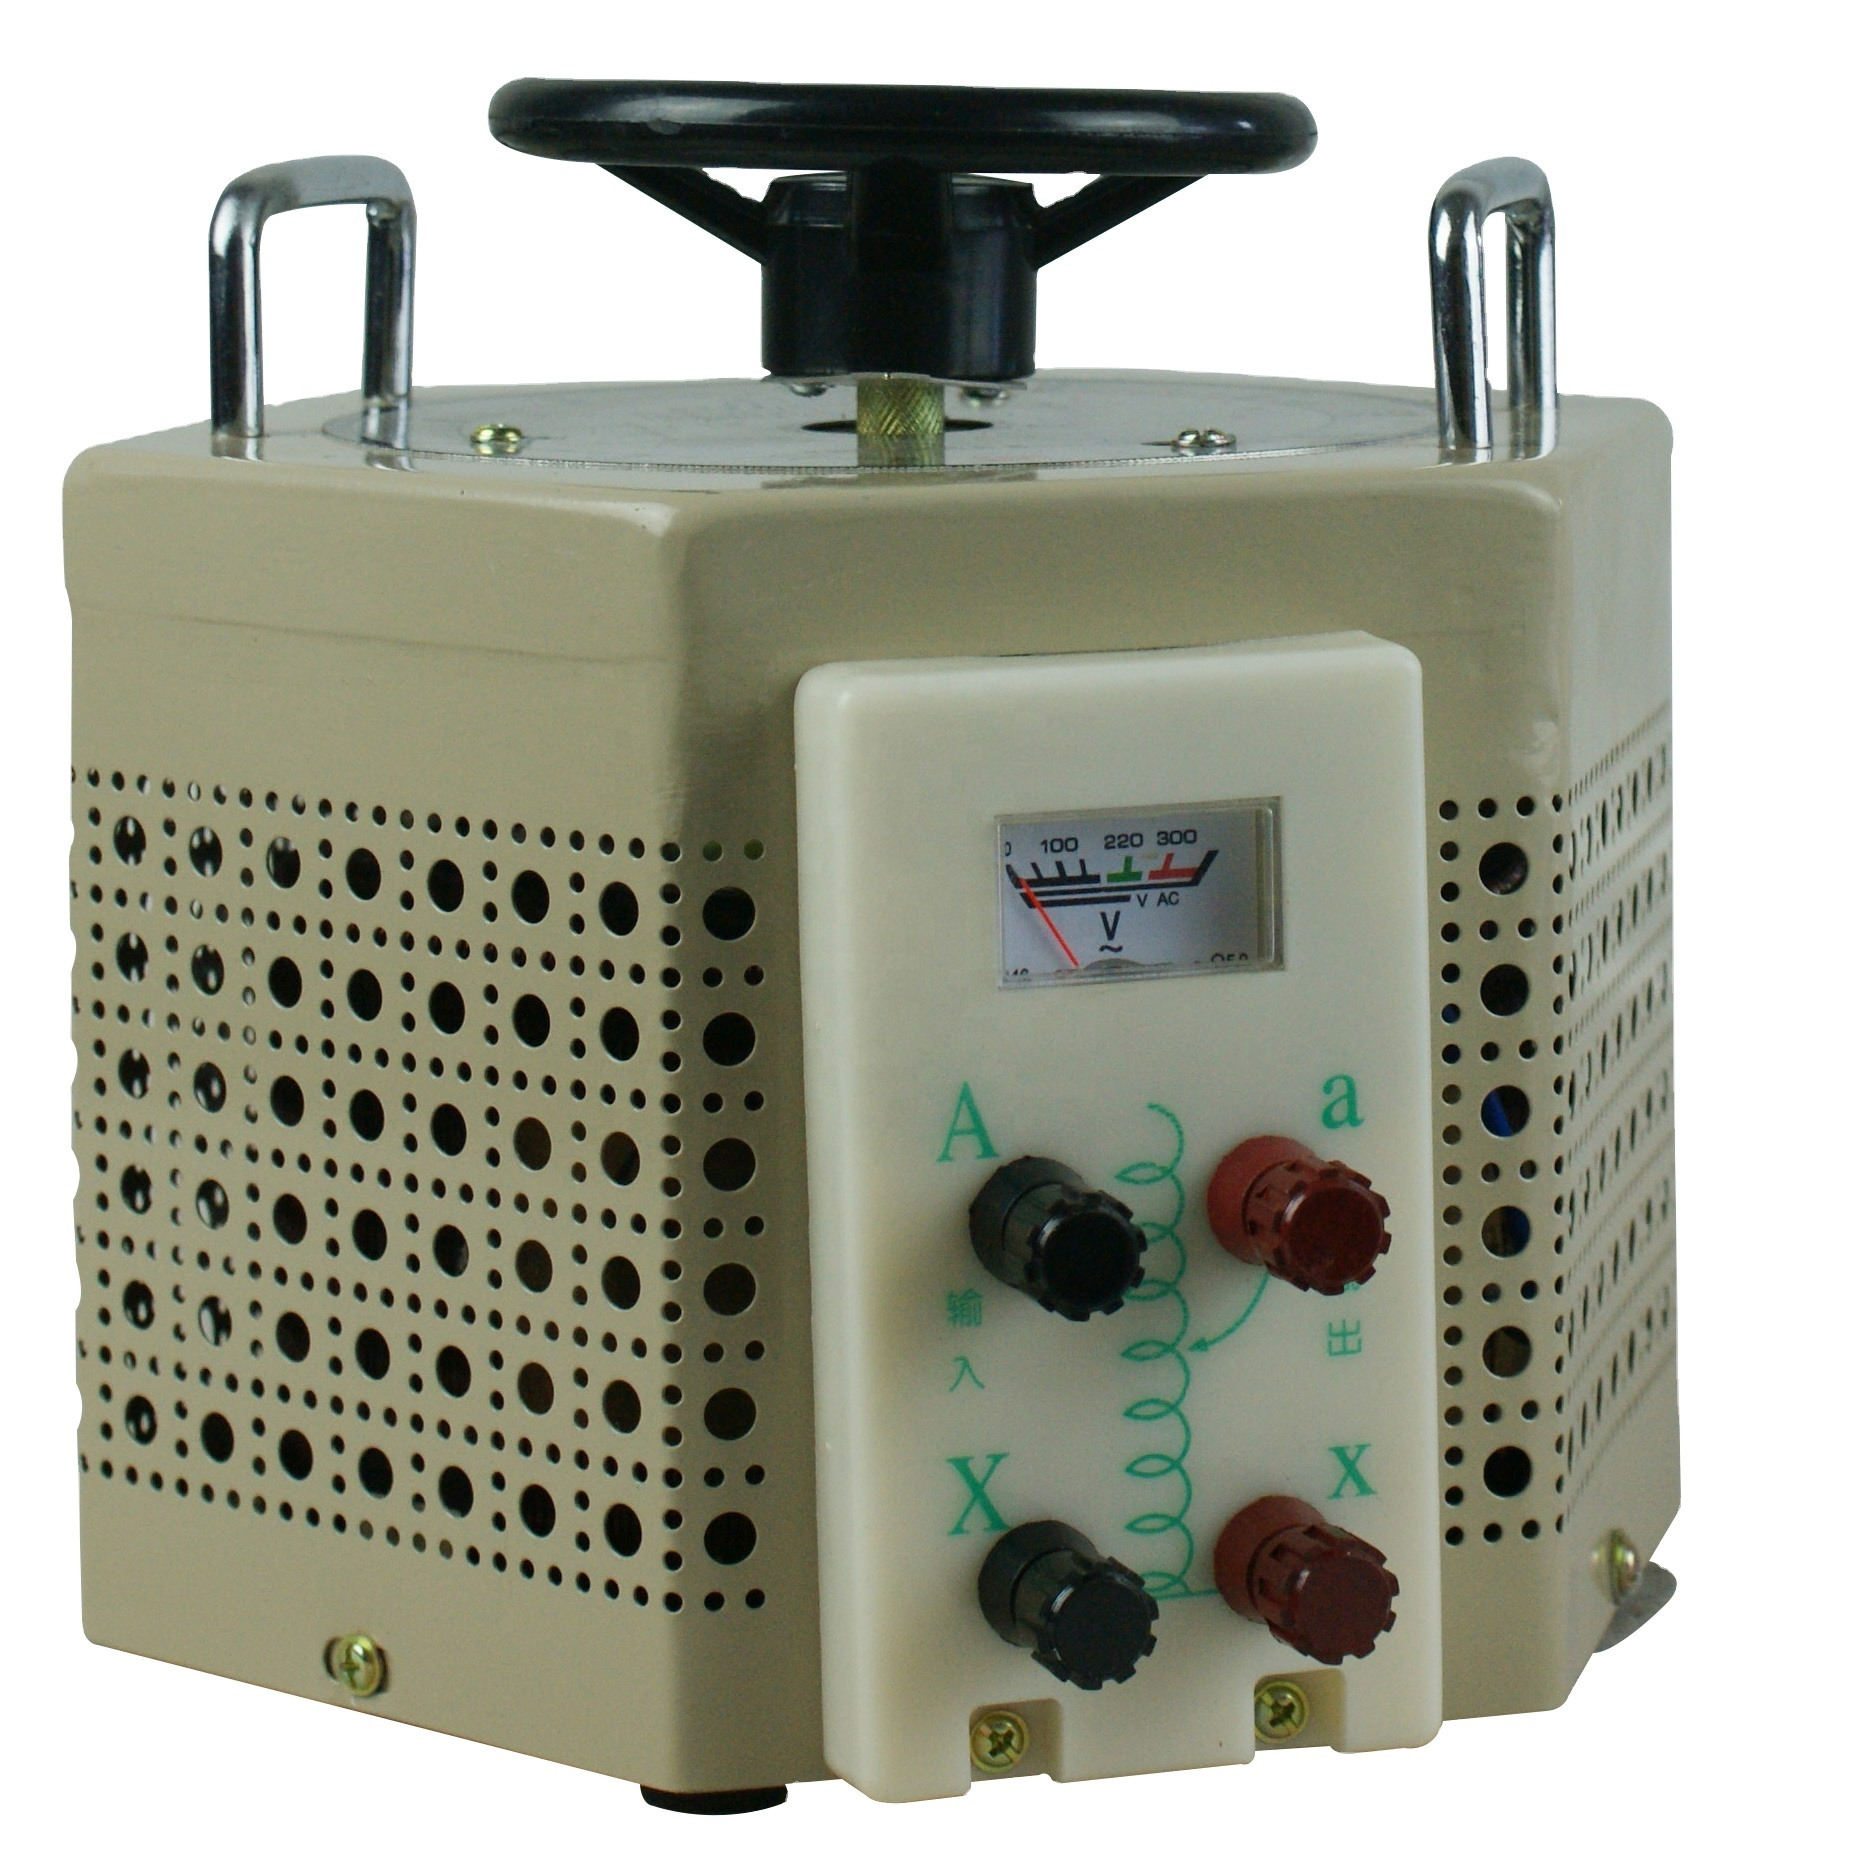 voltage regulator used in lab equipment